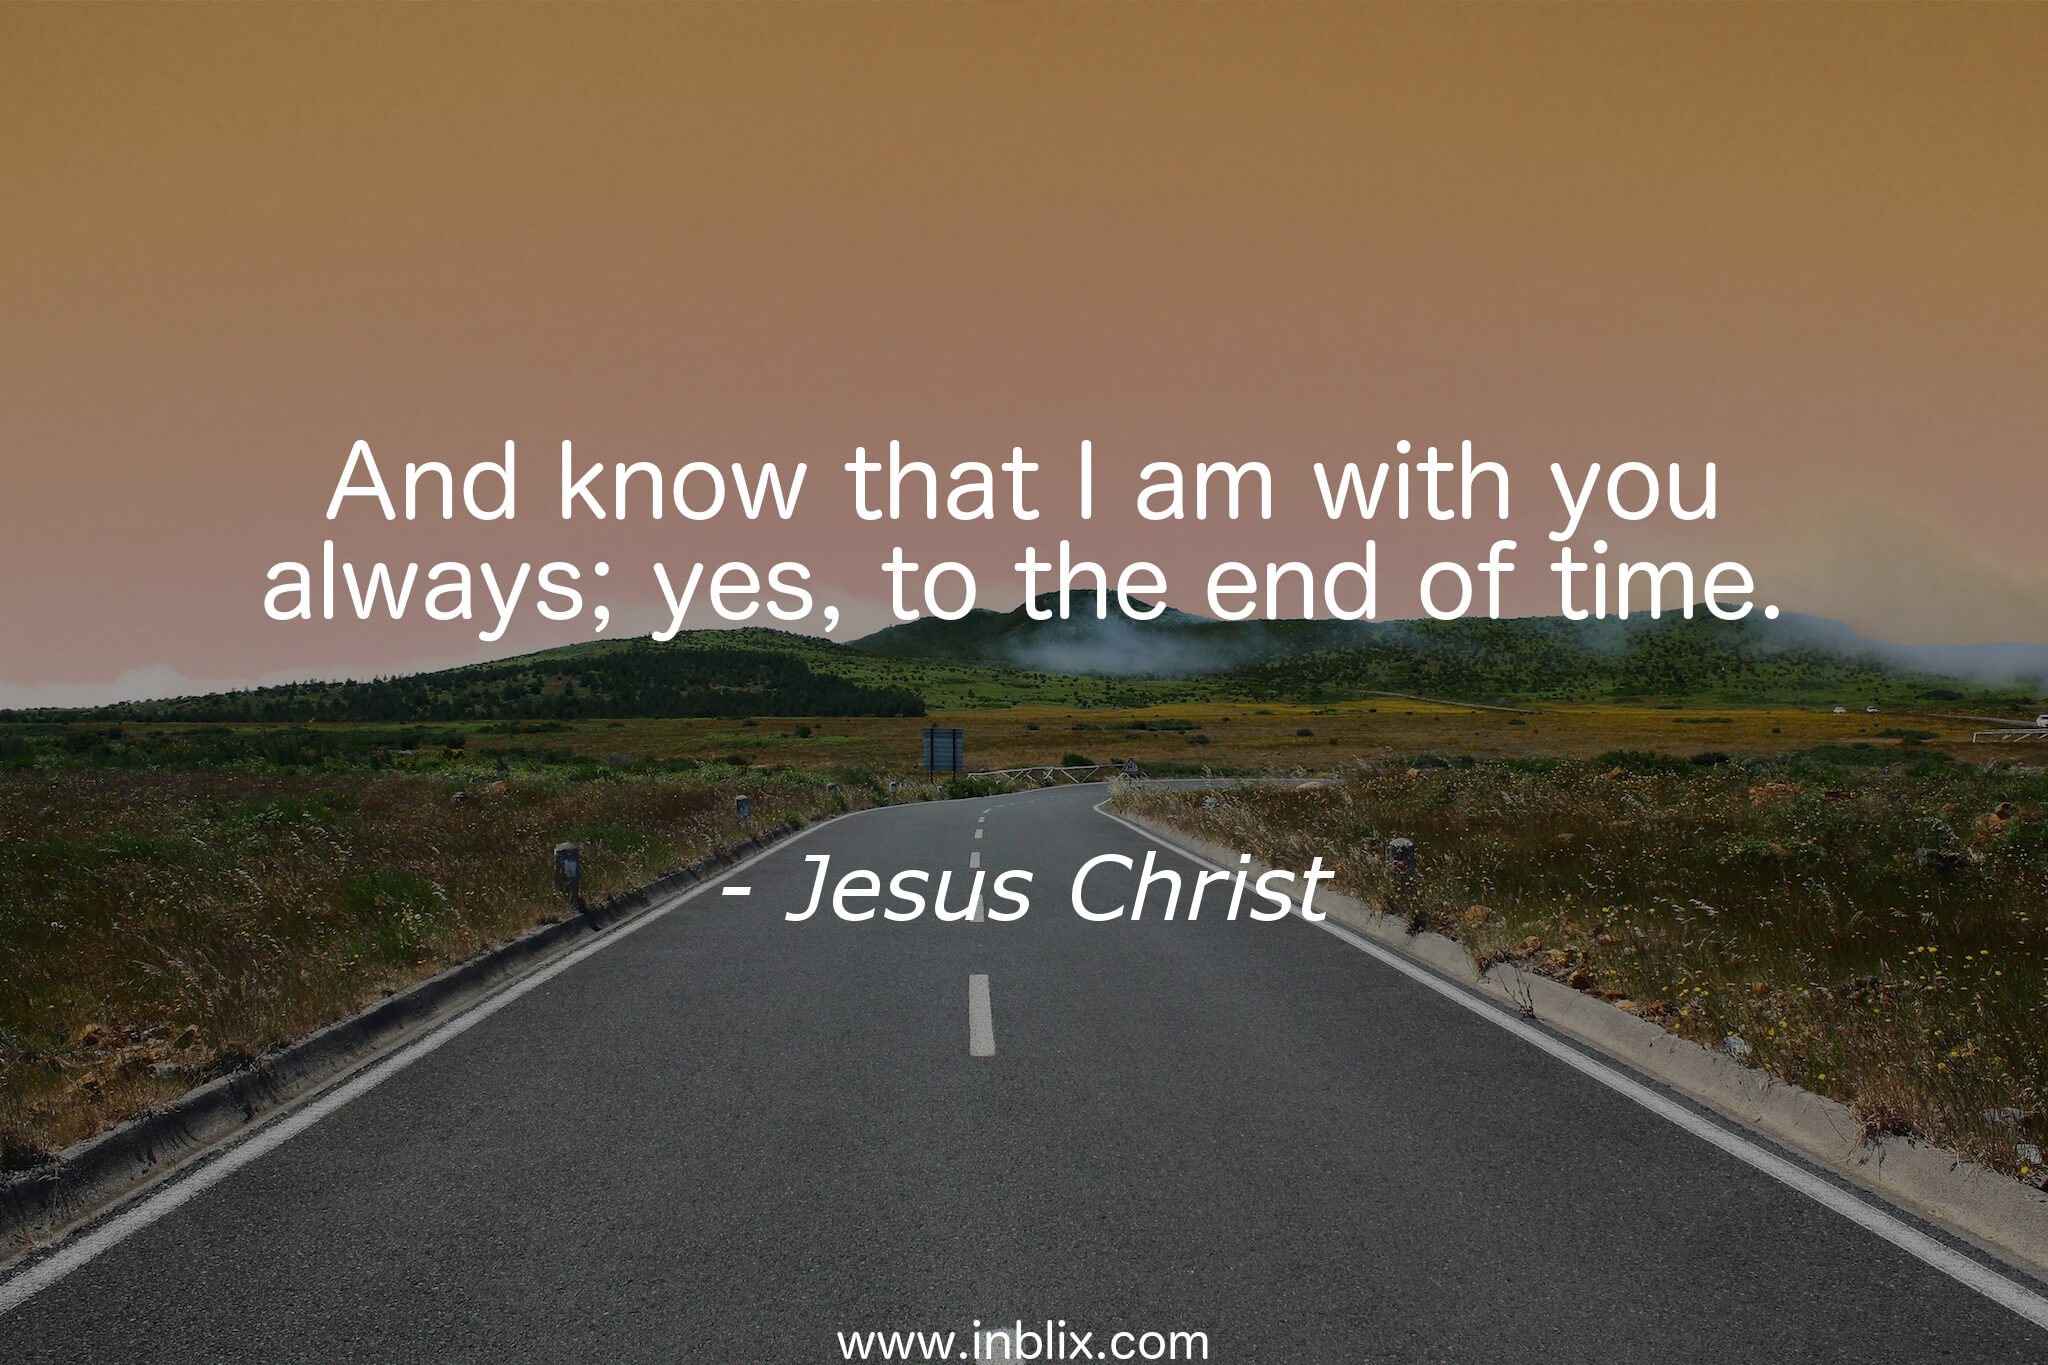 And know that I am with you always; yes, to the end of time.